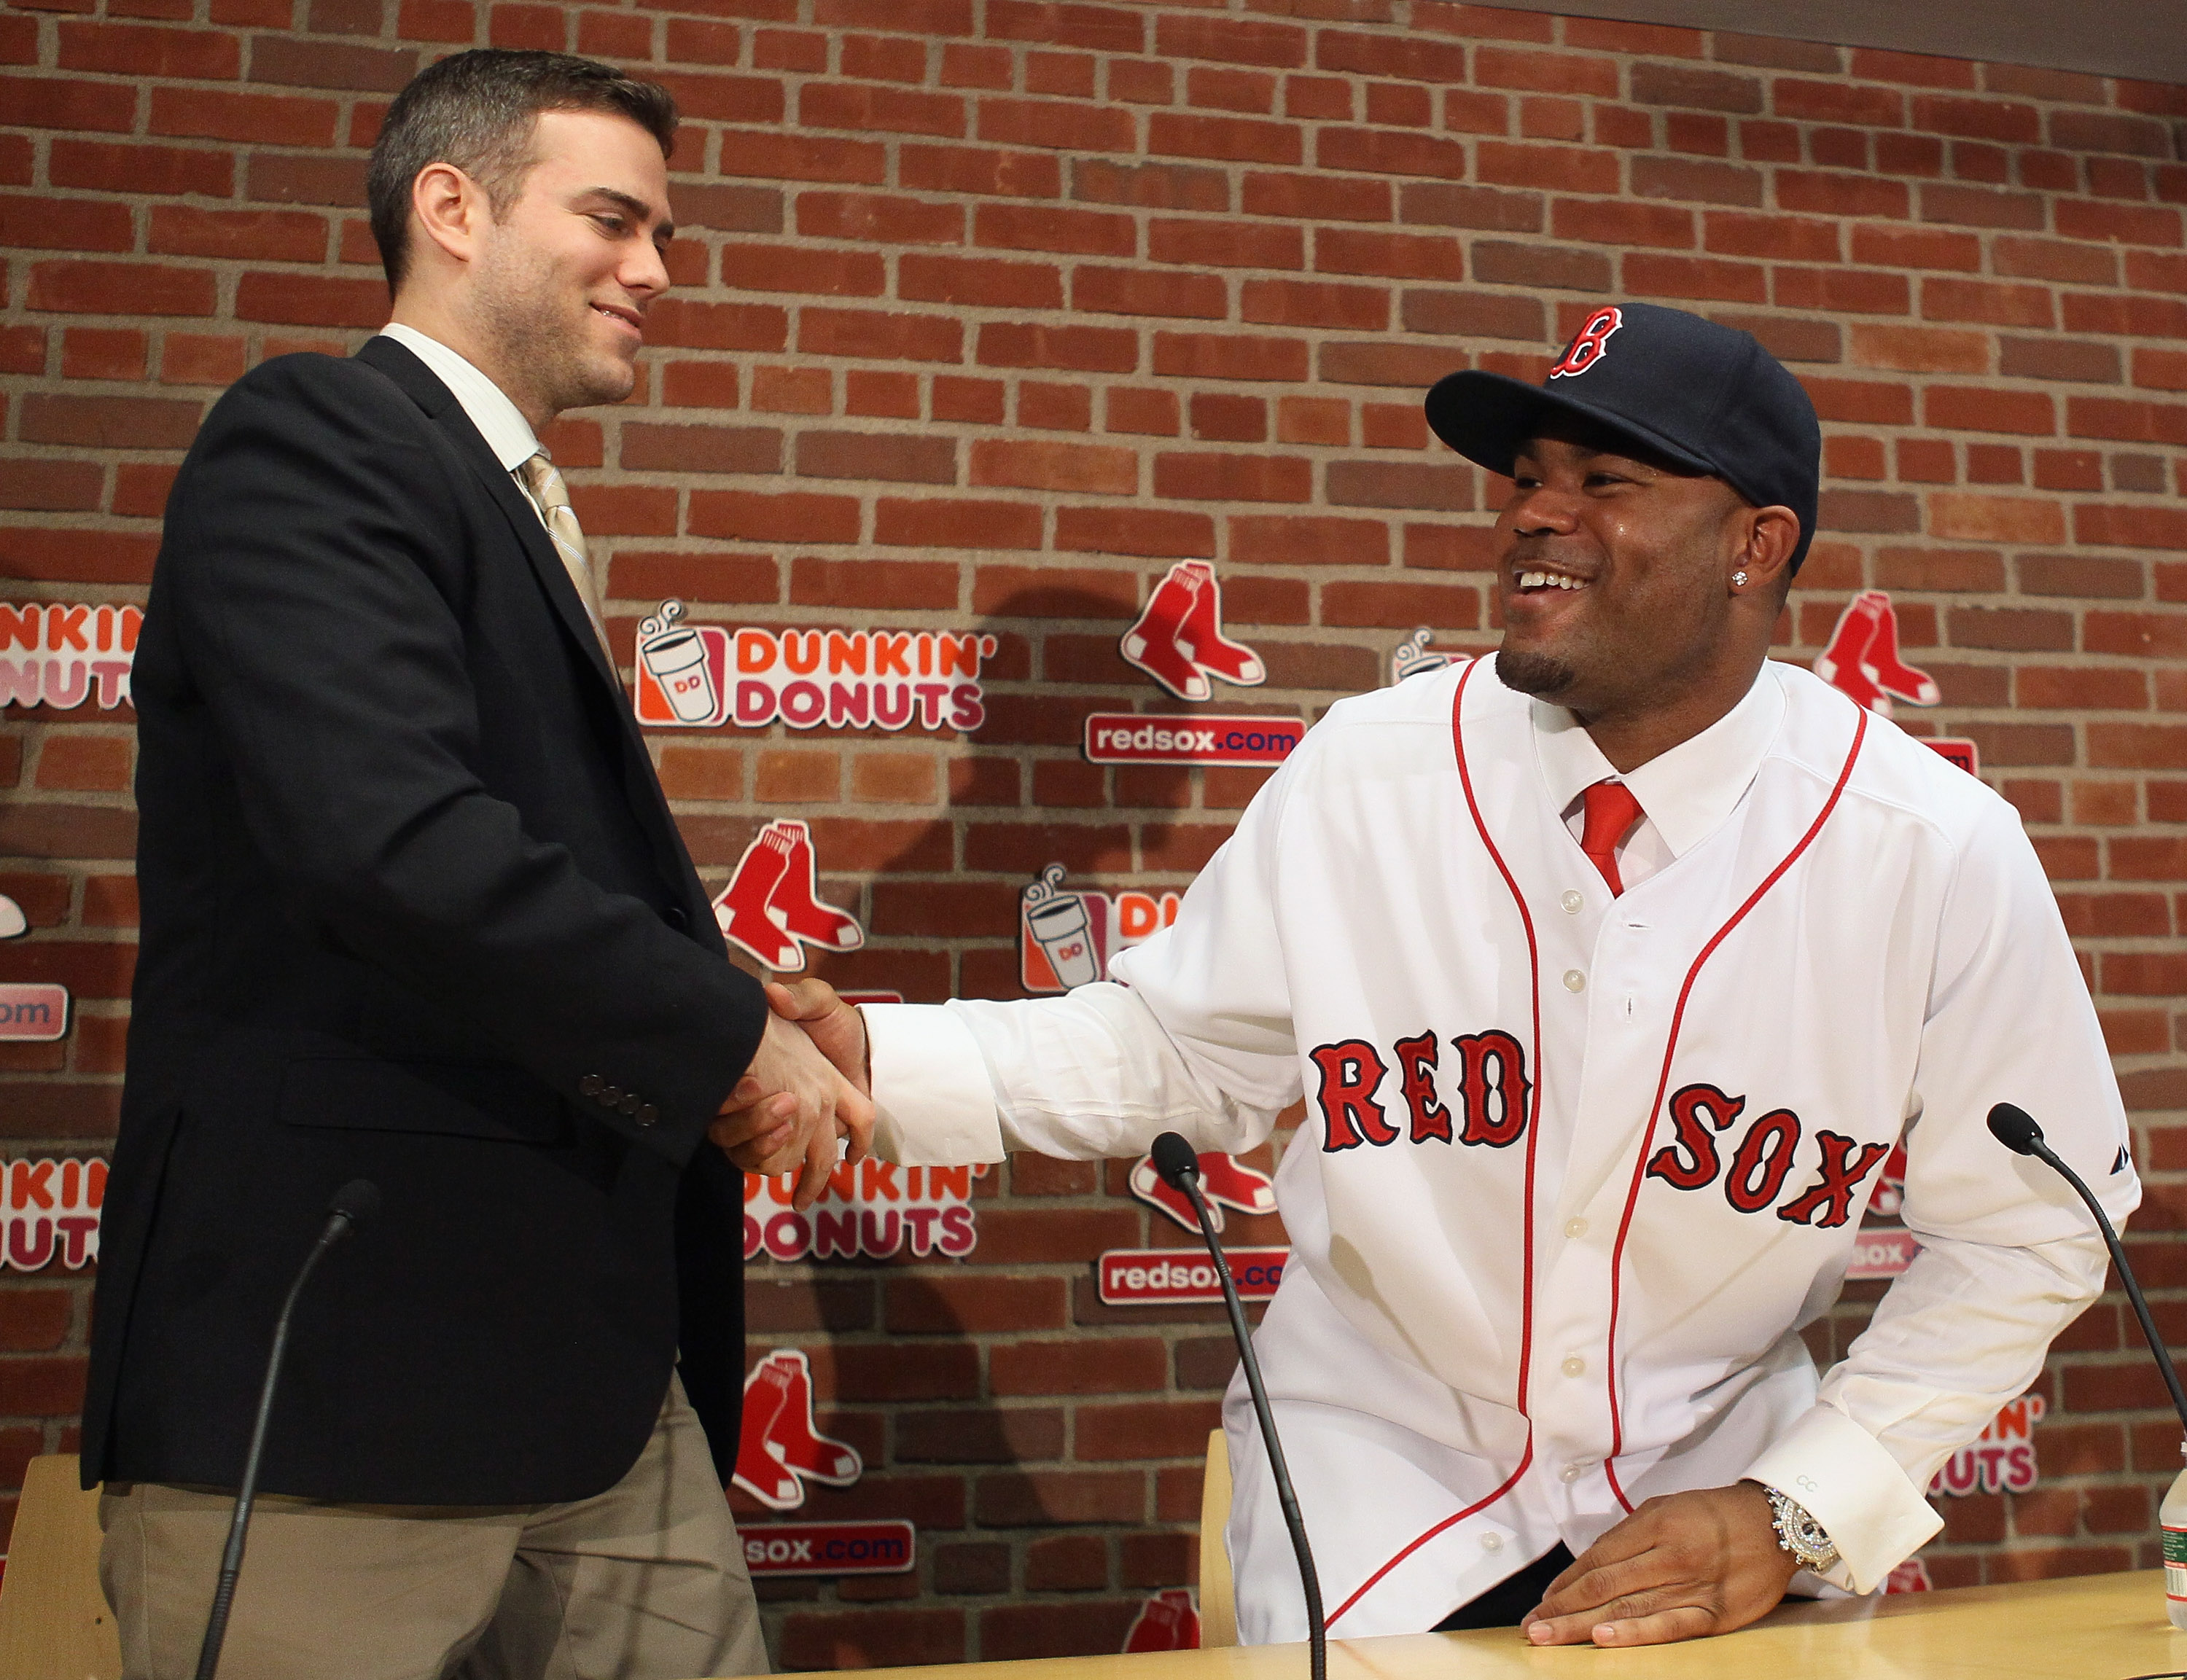 Red Sox GM Theo Epstein (left) welcomes Boston's newest weapon, Carl Crawford.